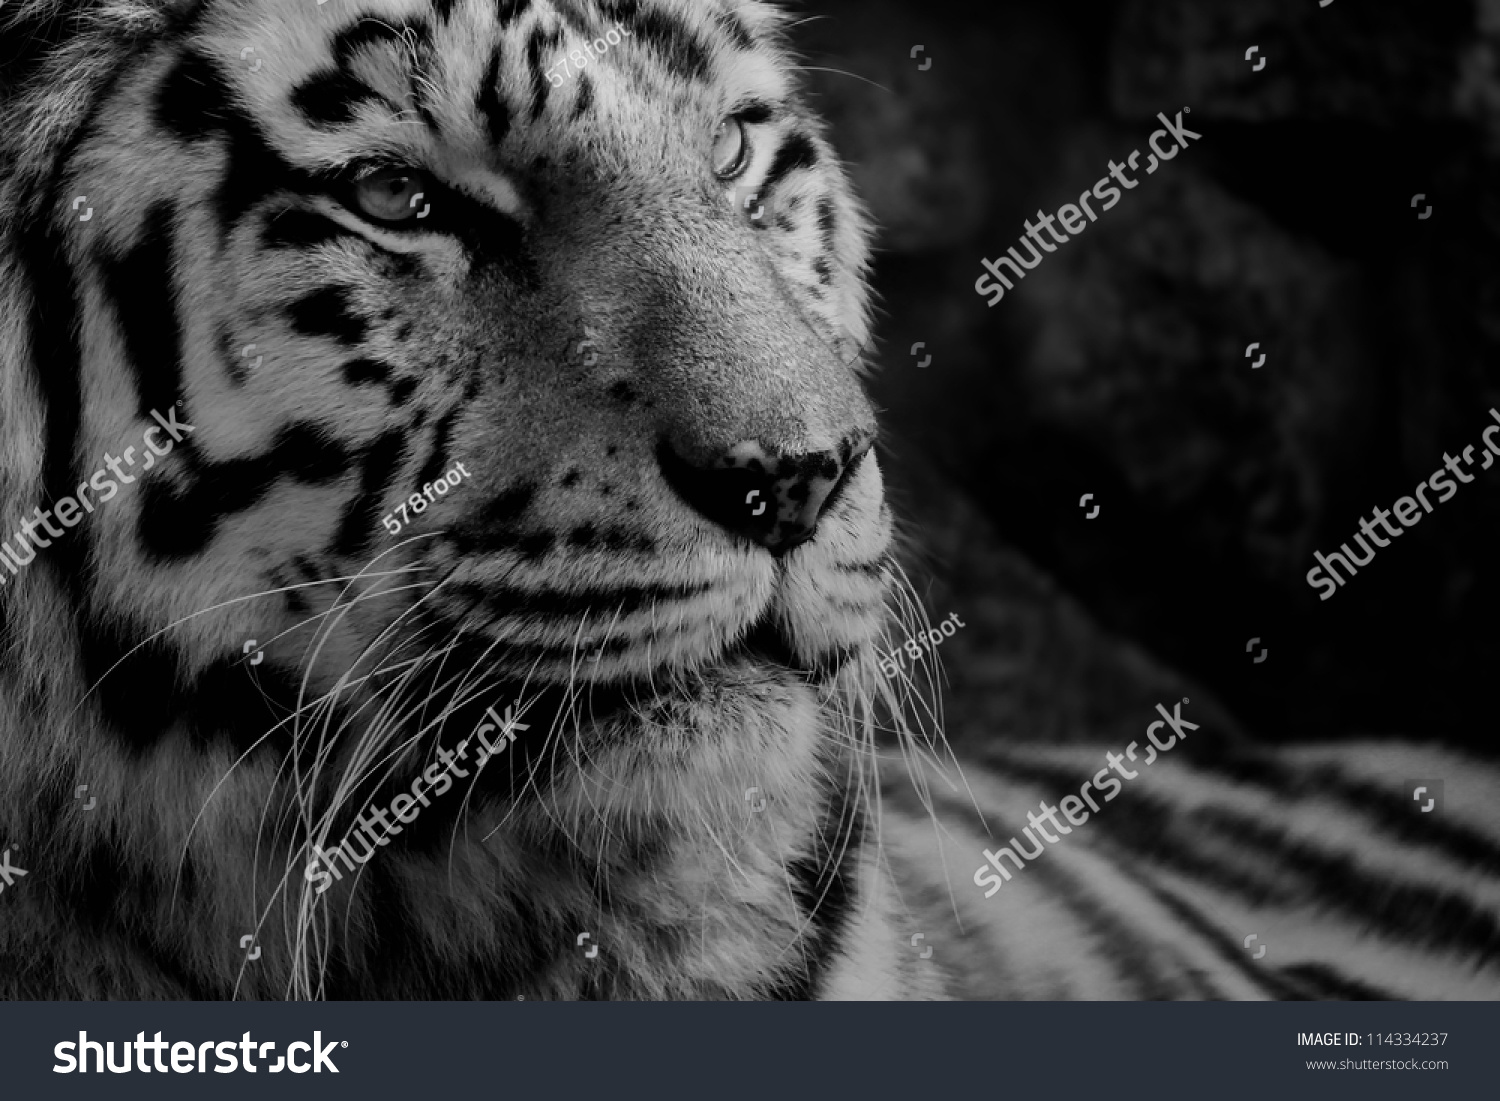 black white photo tiger stock photo (edit now) 114334237 - shutterstock